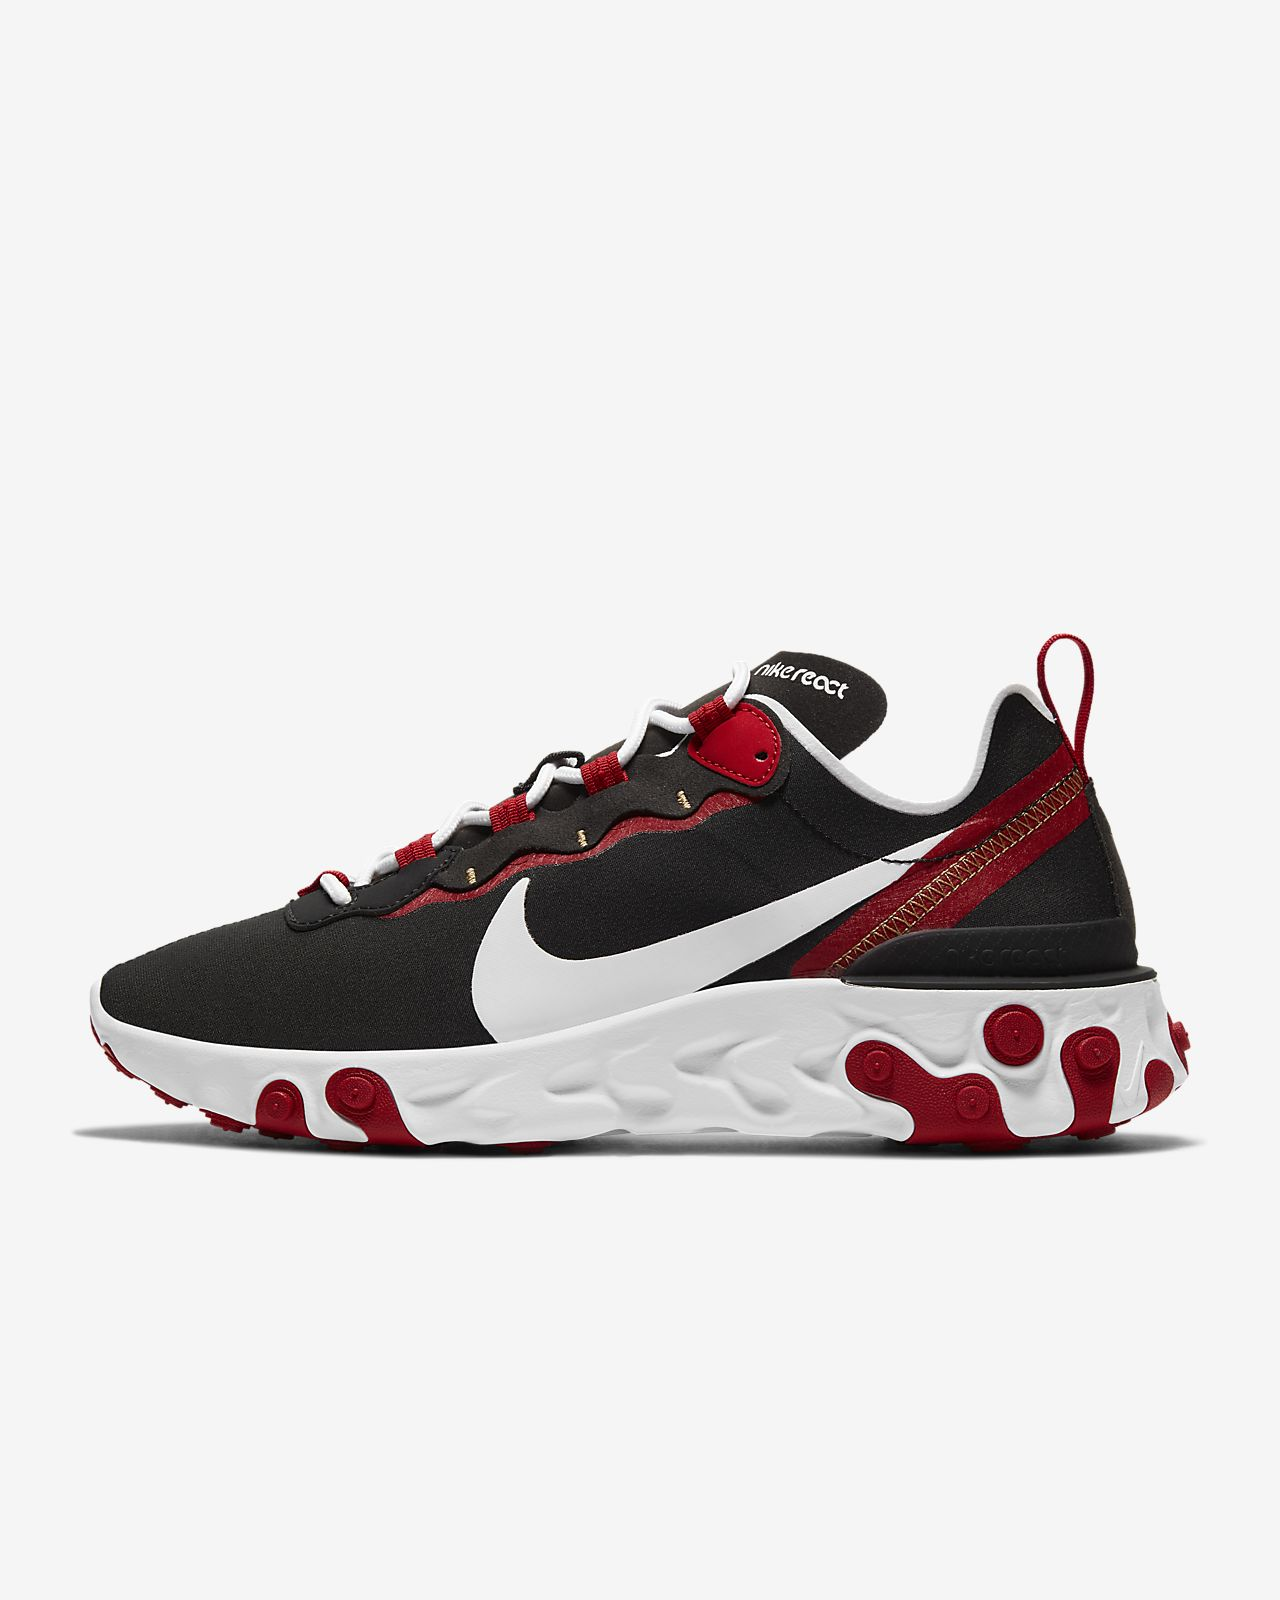 look good shoes sale great look pre order Chaussure Nike React Element 55 pour Femme